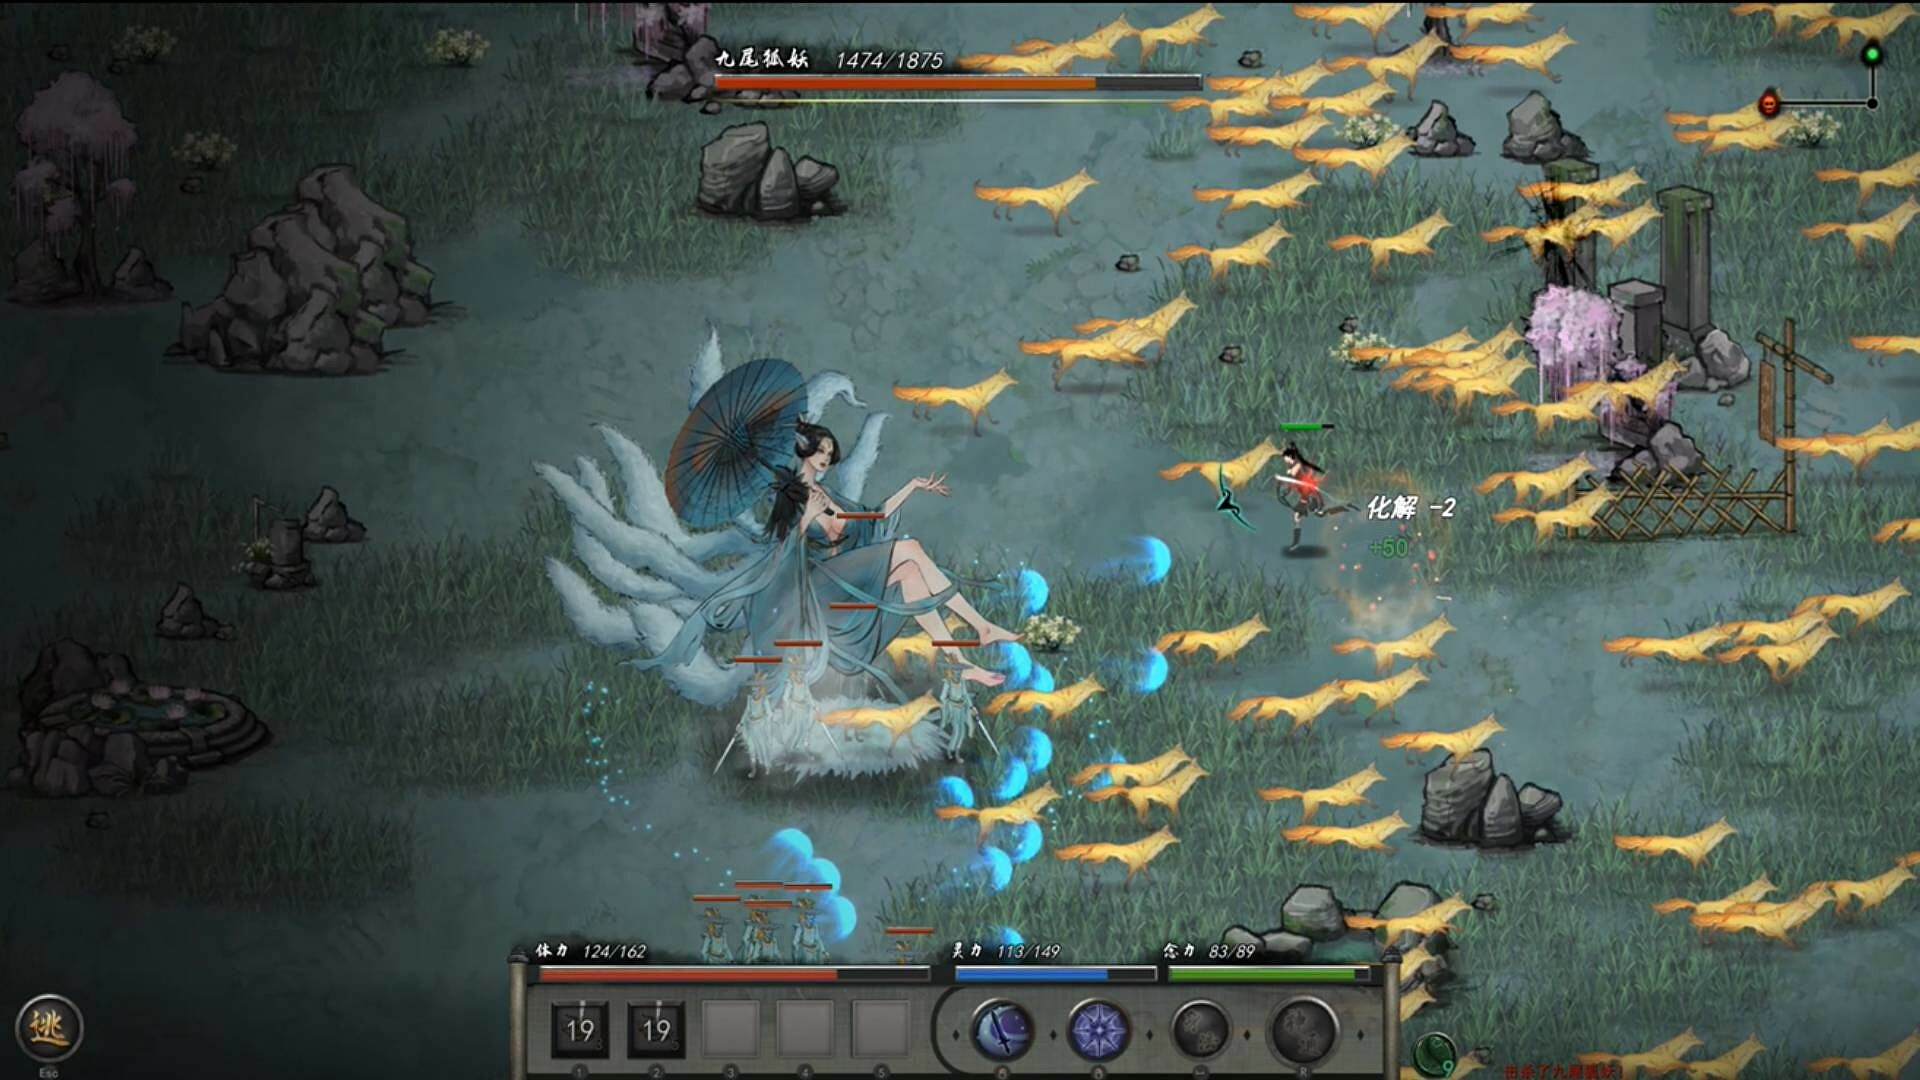 Chinese mega hit Tale of Immortal now has an English version